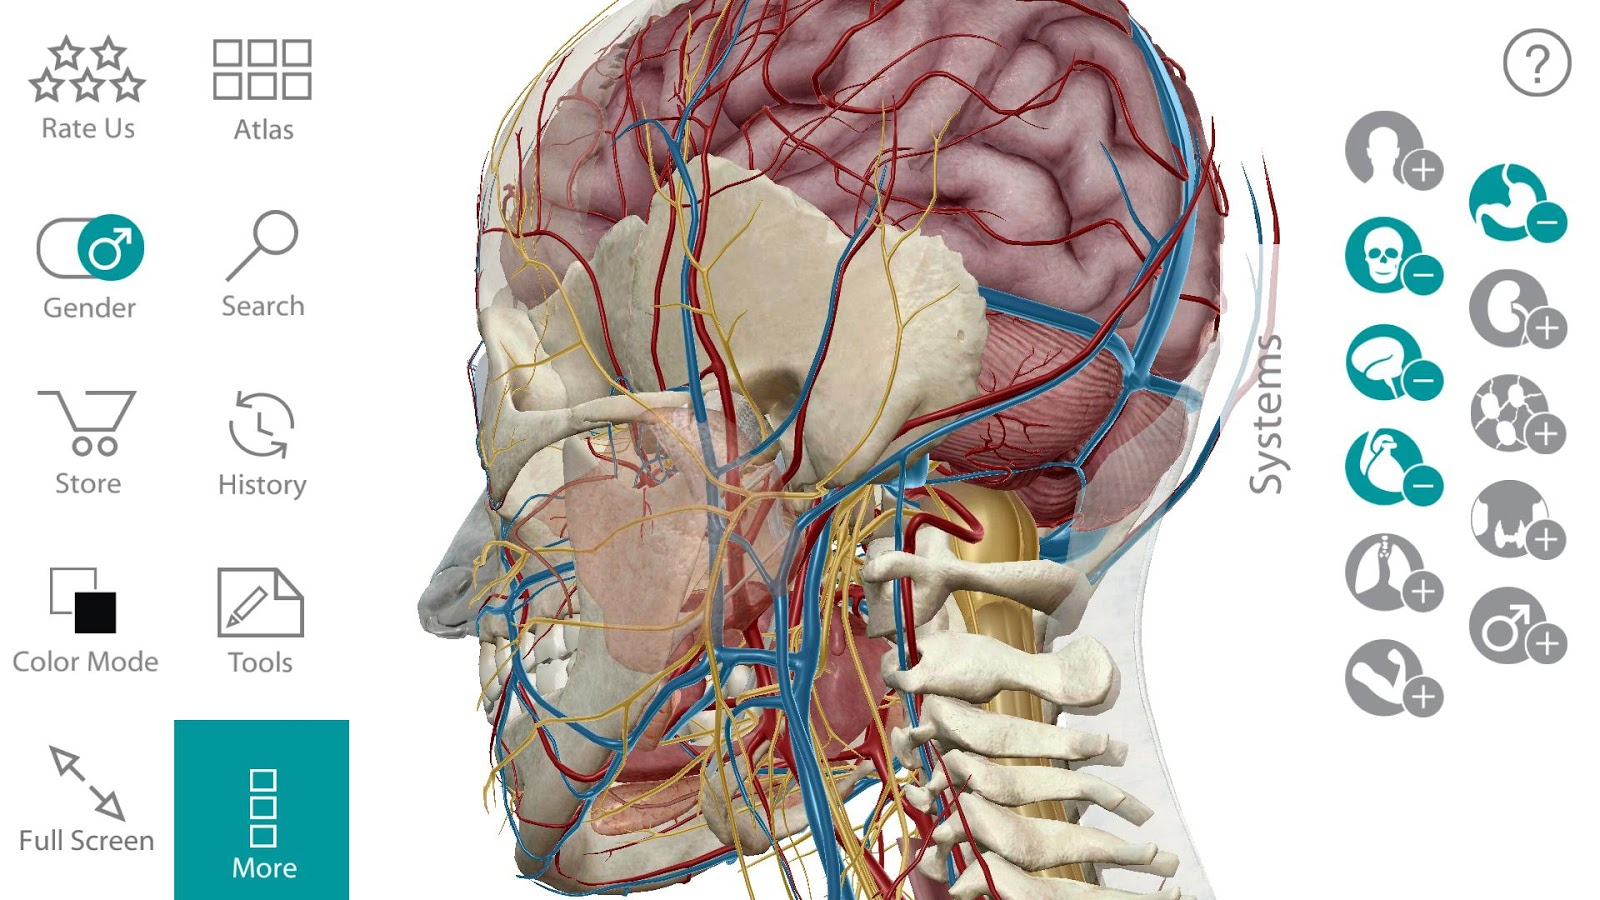 Human Anatomy Atlas 7.4.03 APK Download - Android Medical Apps